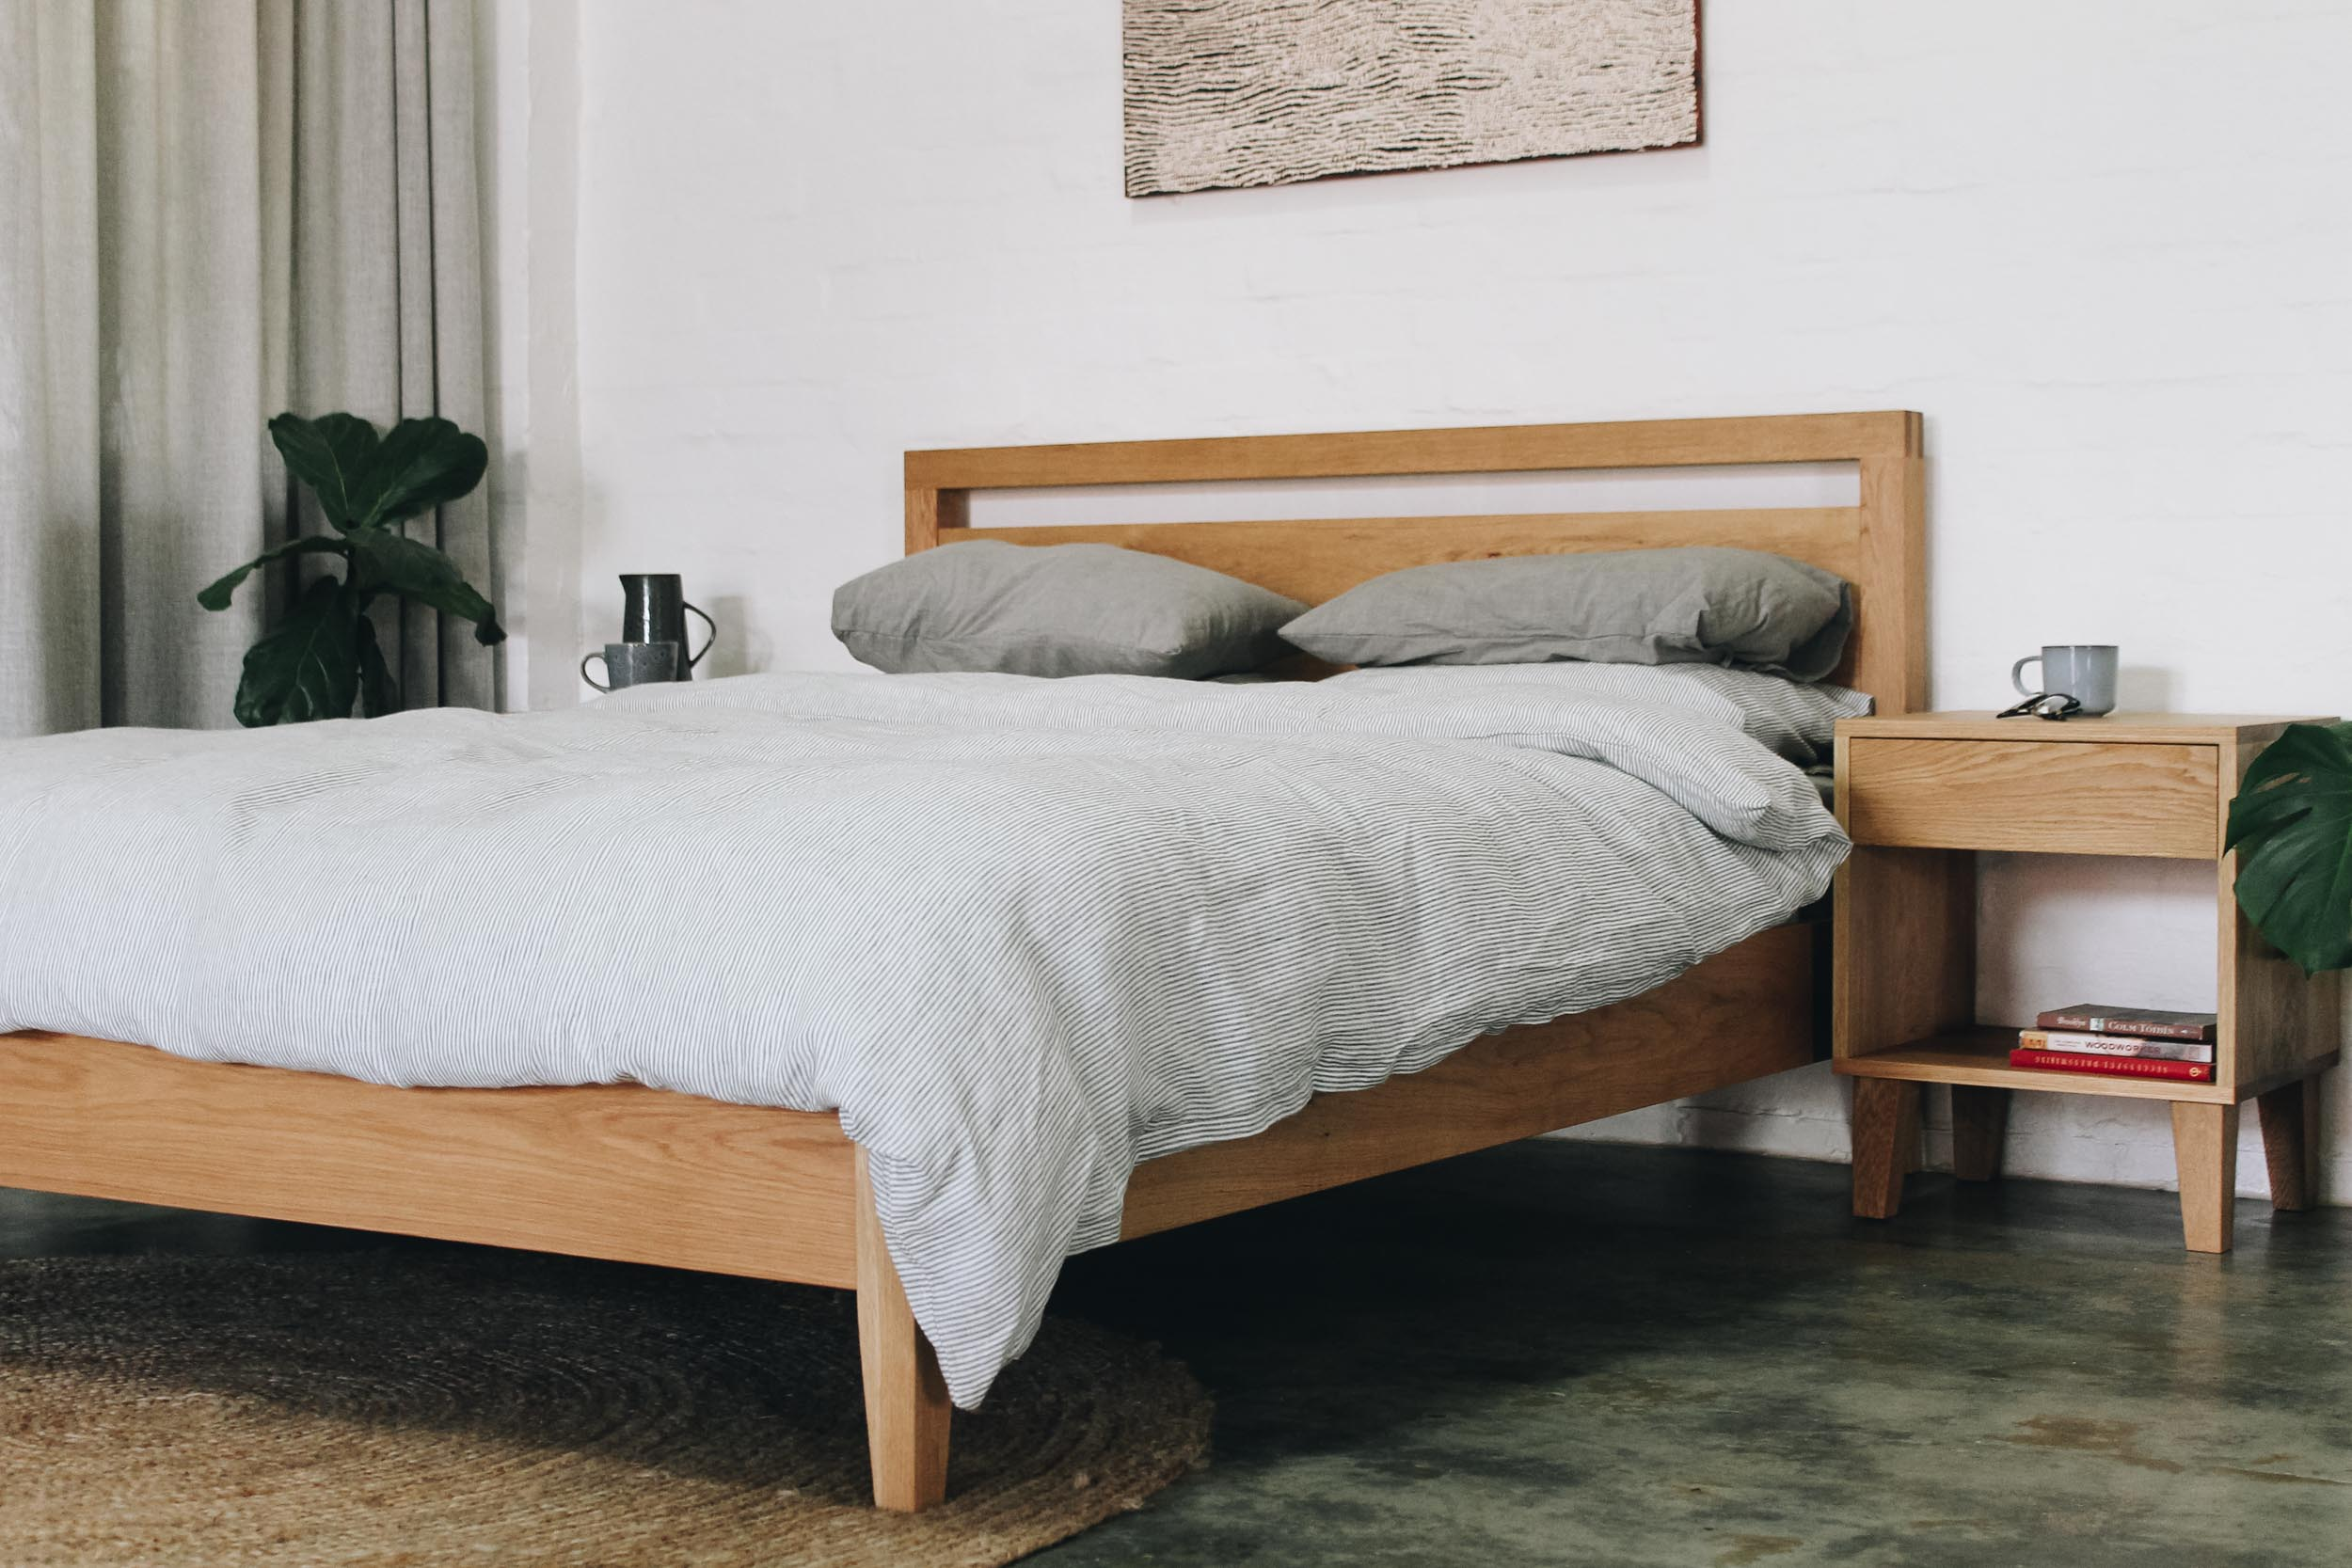 Al and Imo Handmade - American Oak Custom bed and Bedside Tables-30.jpg